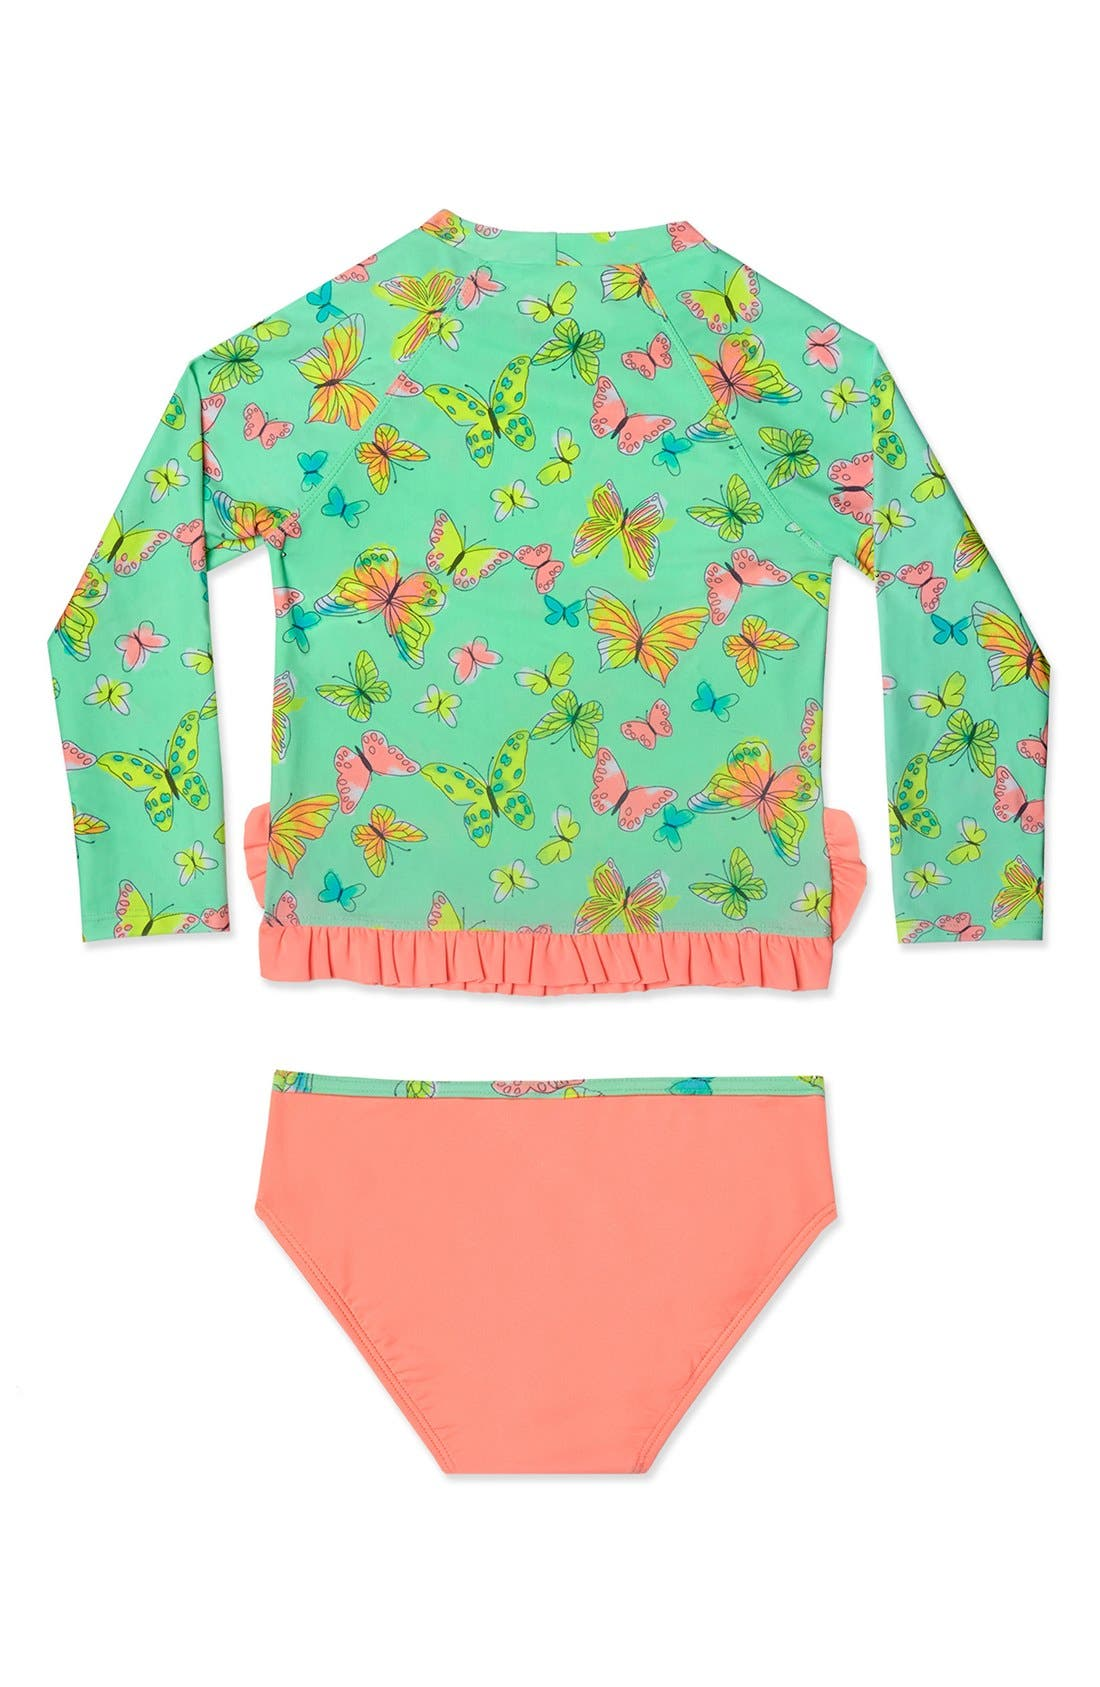 'Butterfly' Two-Piece Rashguard Swimsuit,                             Alternate thumbnail 2, color,                             332